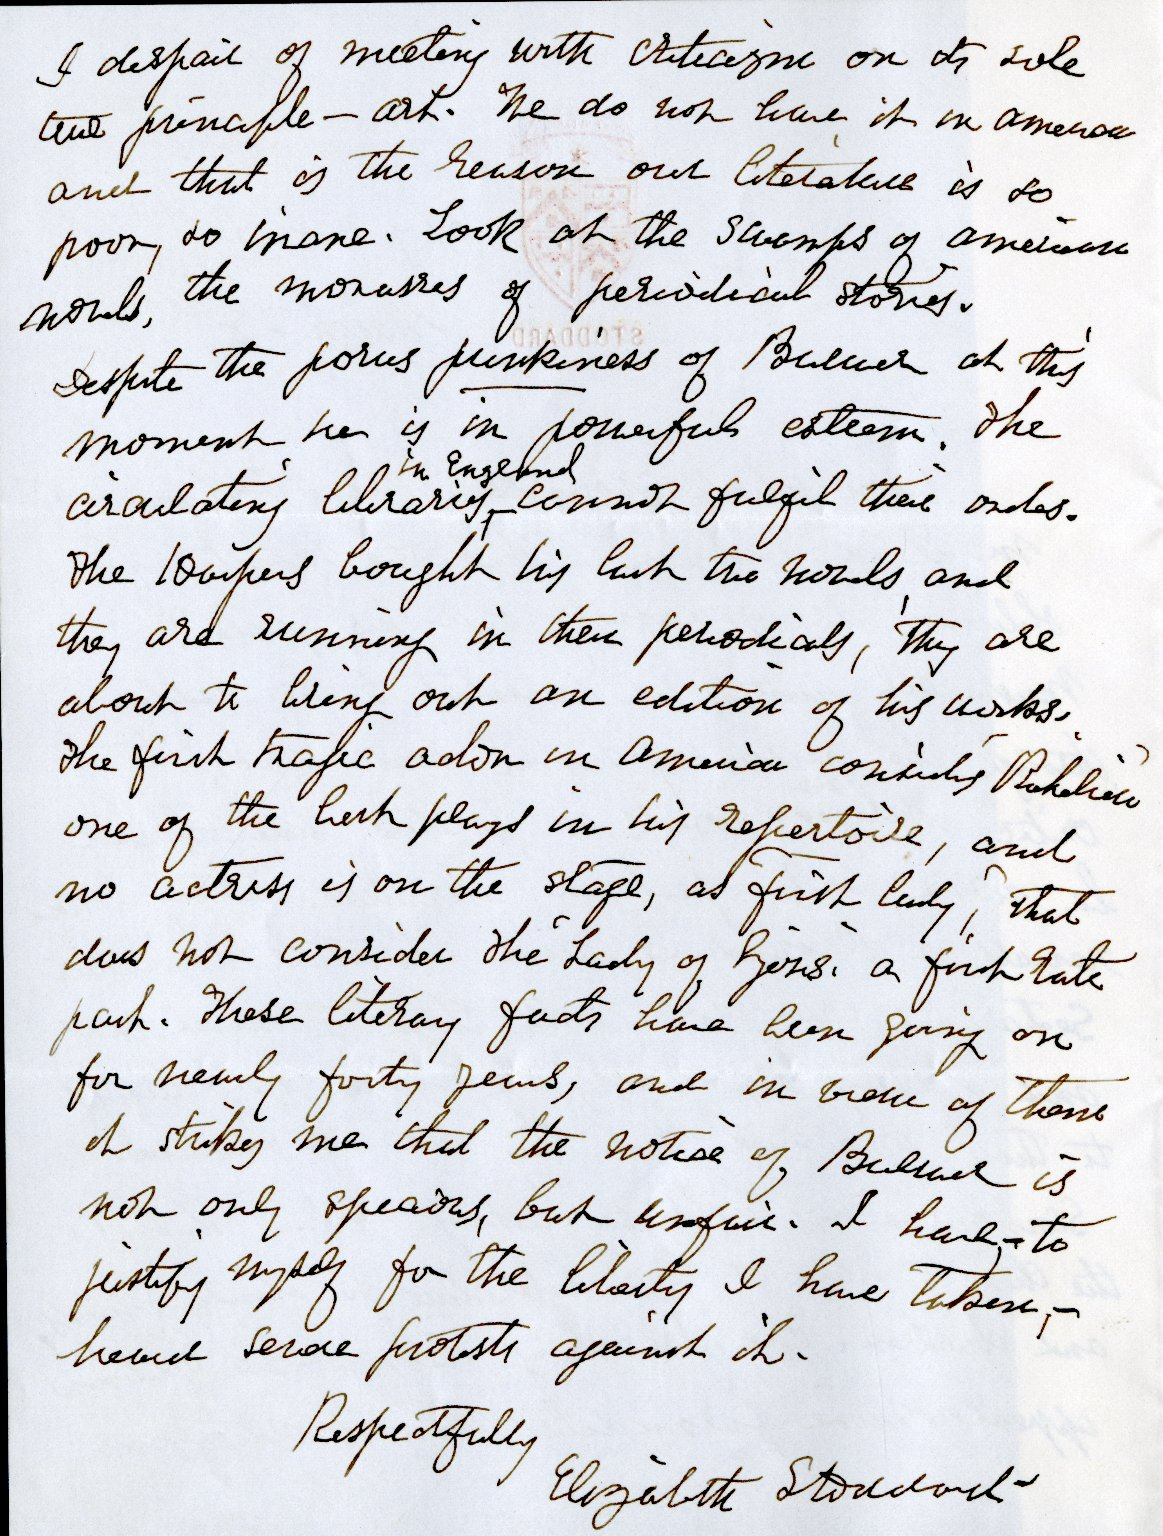 Stoddard, Elizabeth. ALS, 2 pages, [March 28].